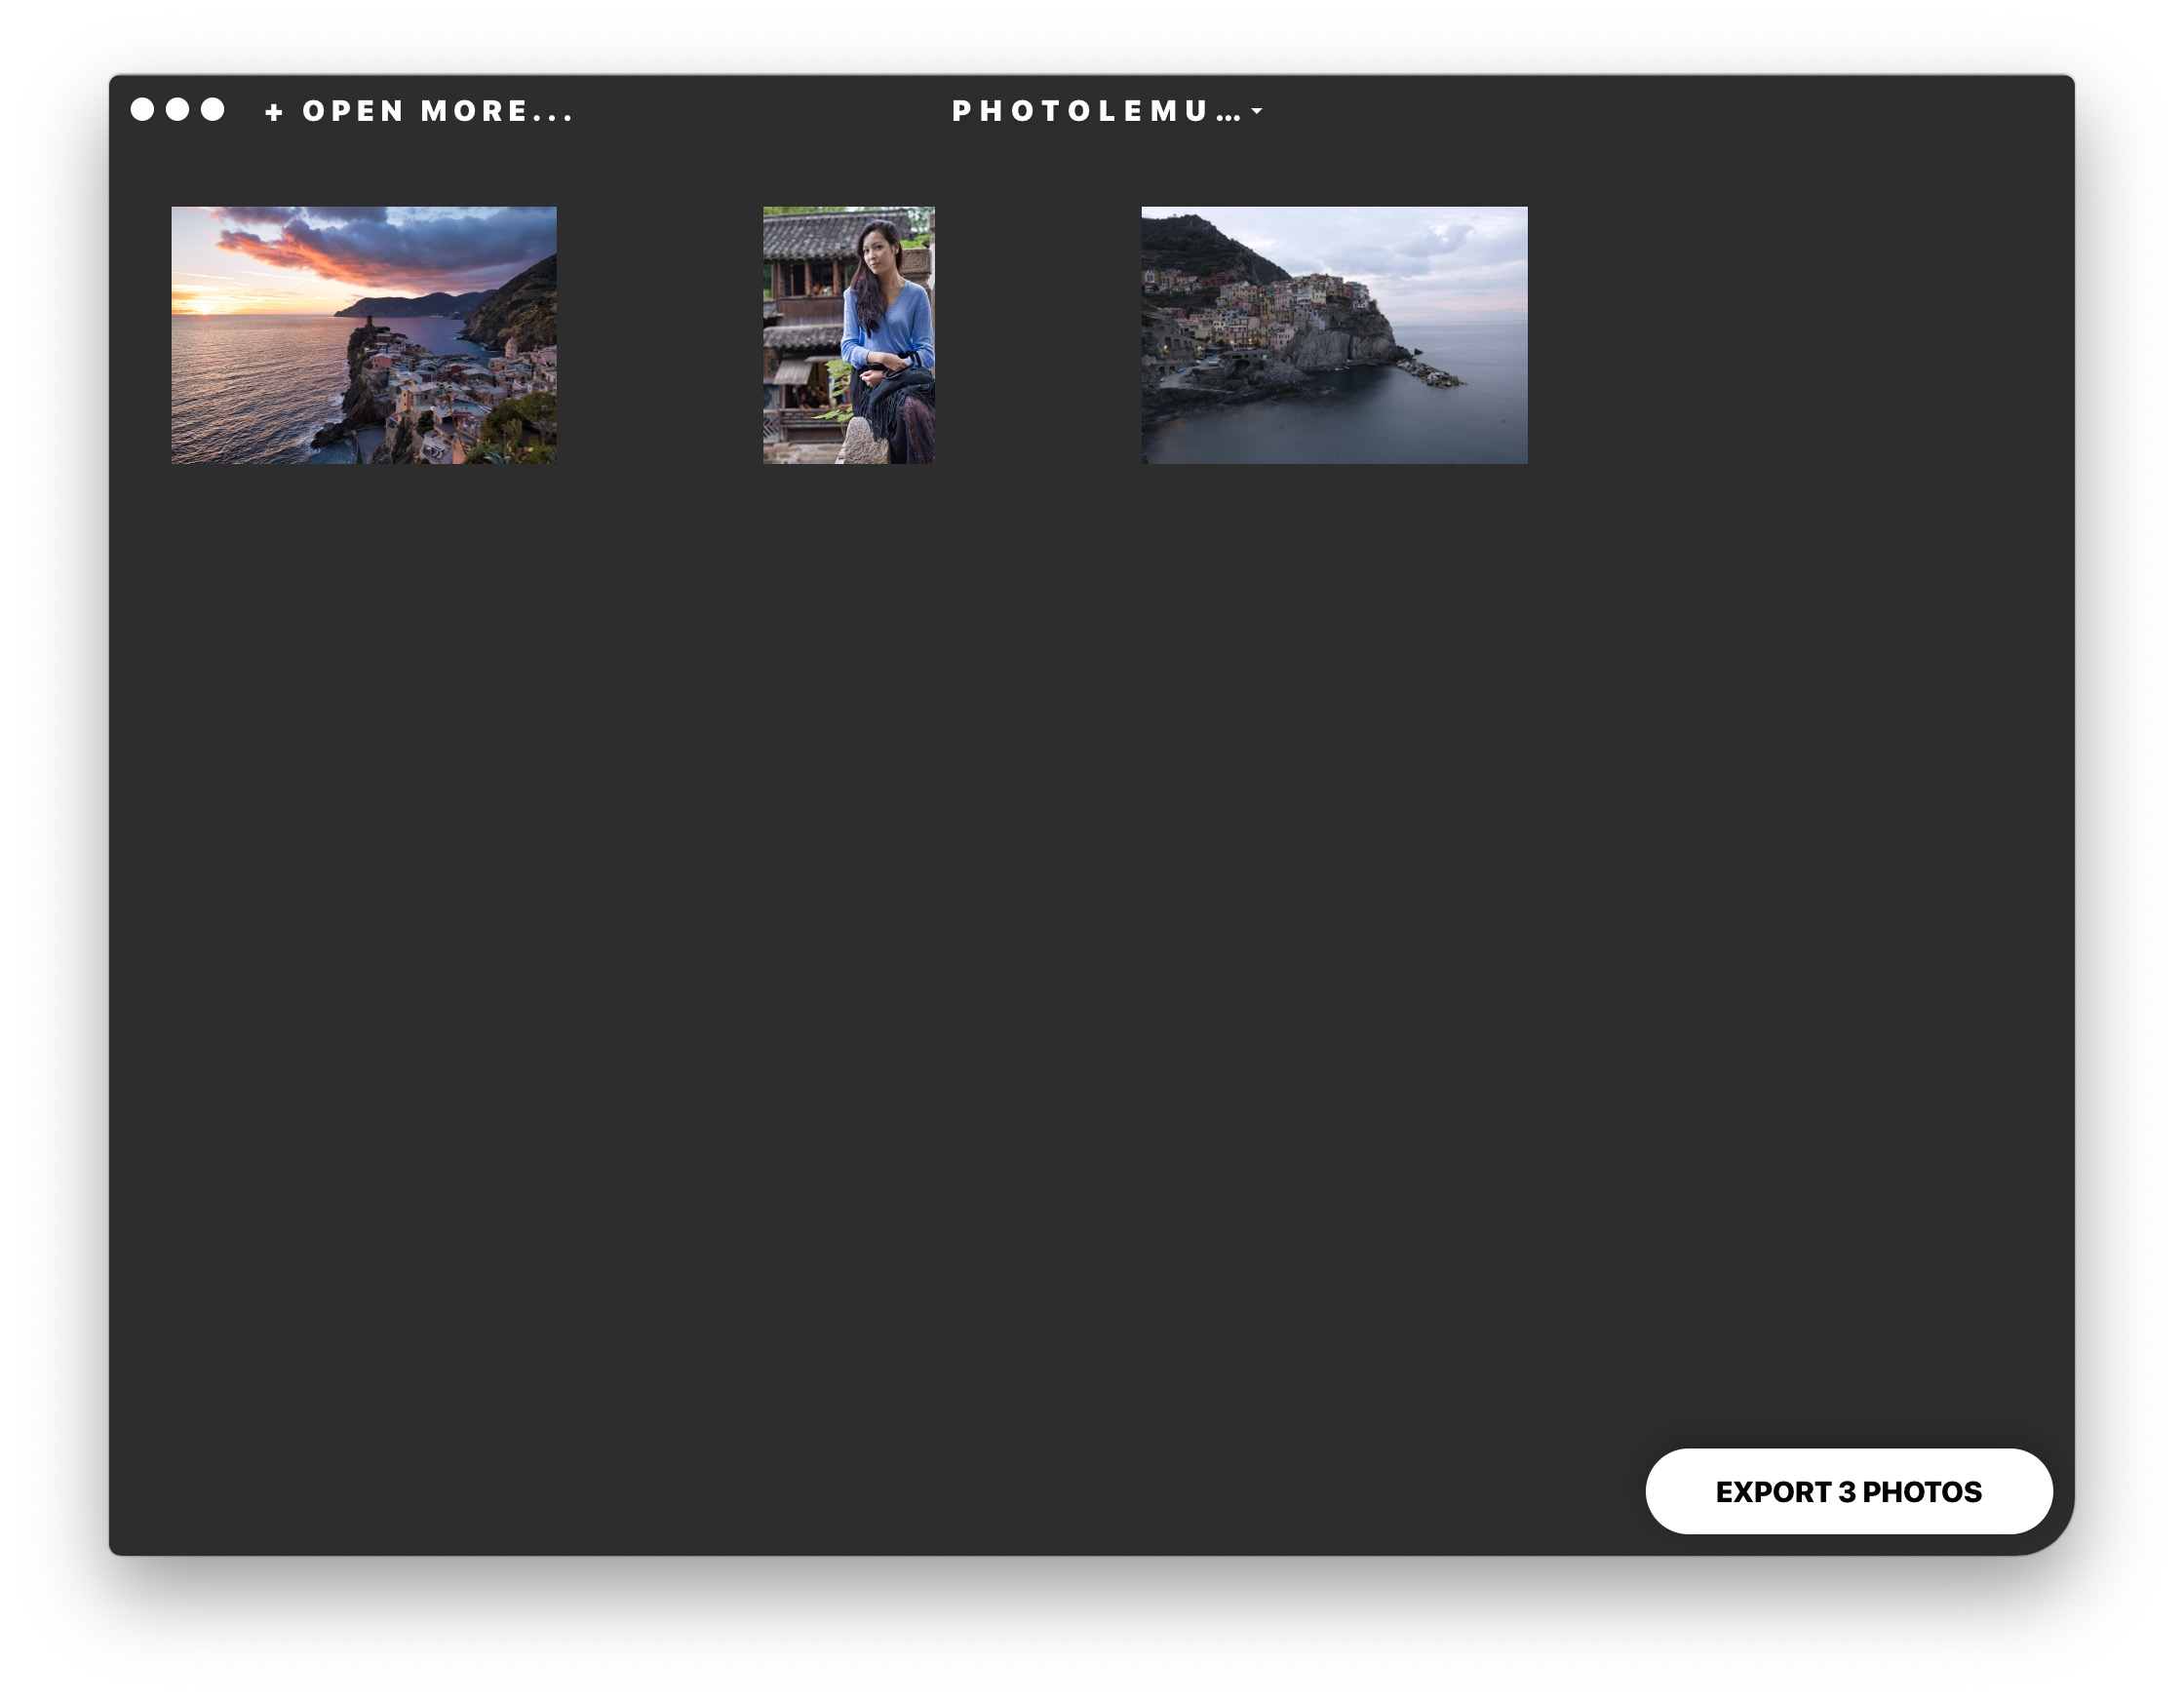 You can import multiple images and export them all at once.